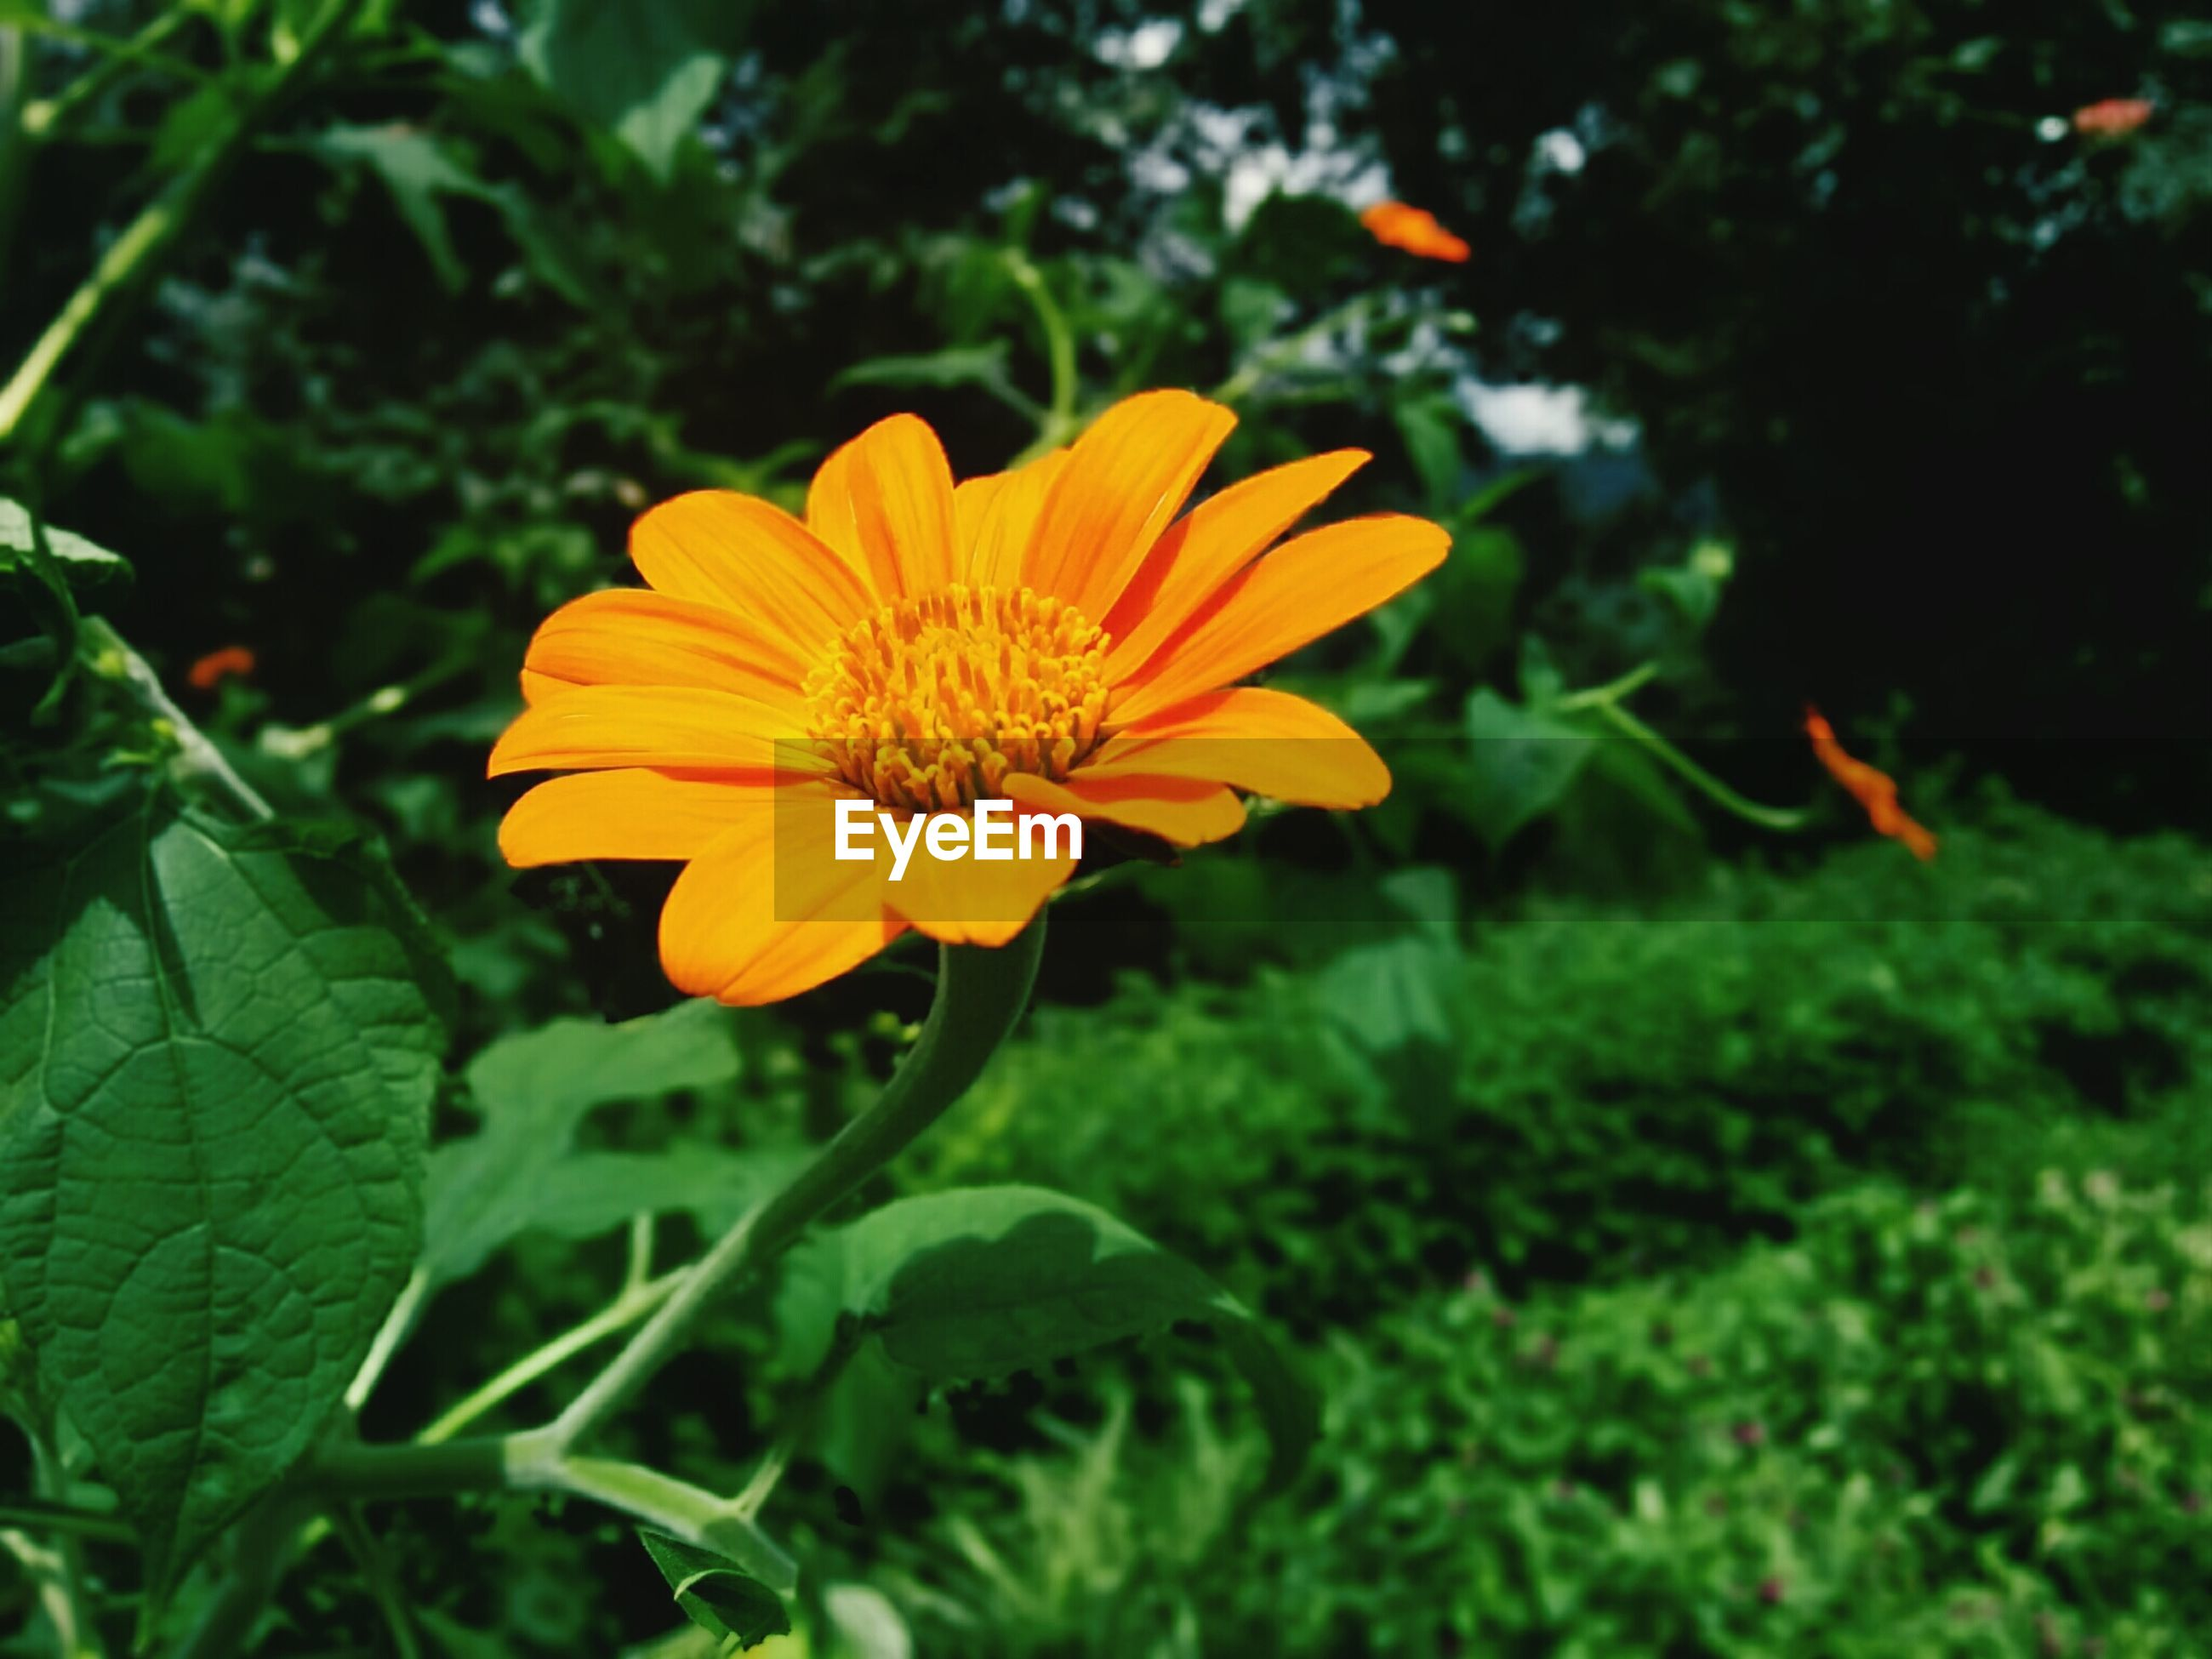 flower, petal, freshness, fragility, growth, flower head, yellow, beauty in nature, focus on foreground, blooming, close-up, plant, nature, pollen, orange color, in bloom, green color, single flower, leaf, park - man made space